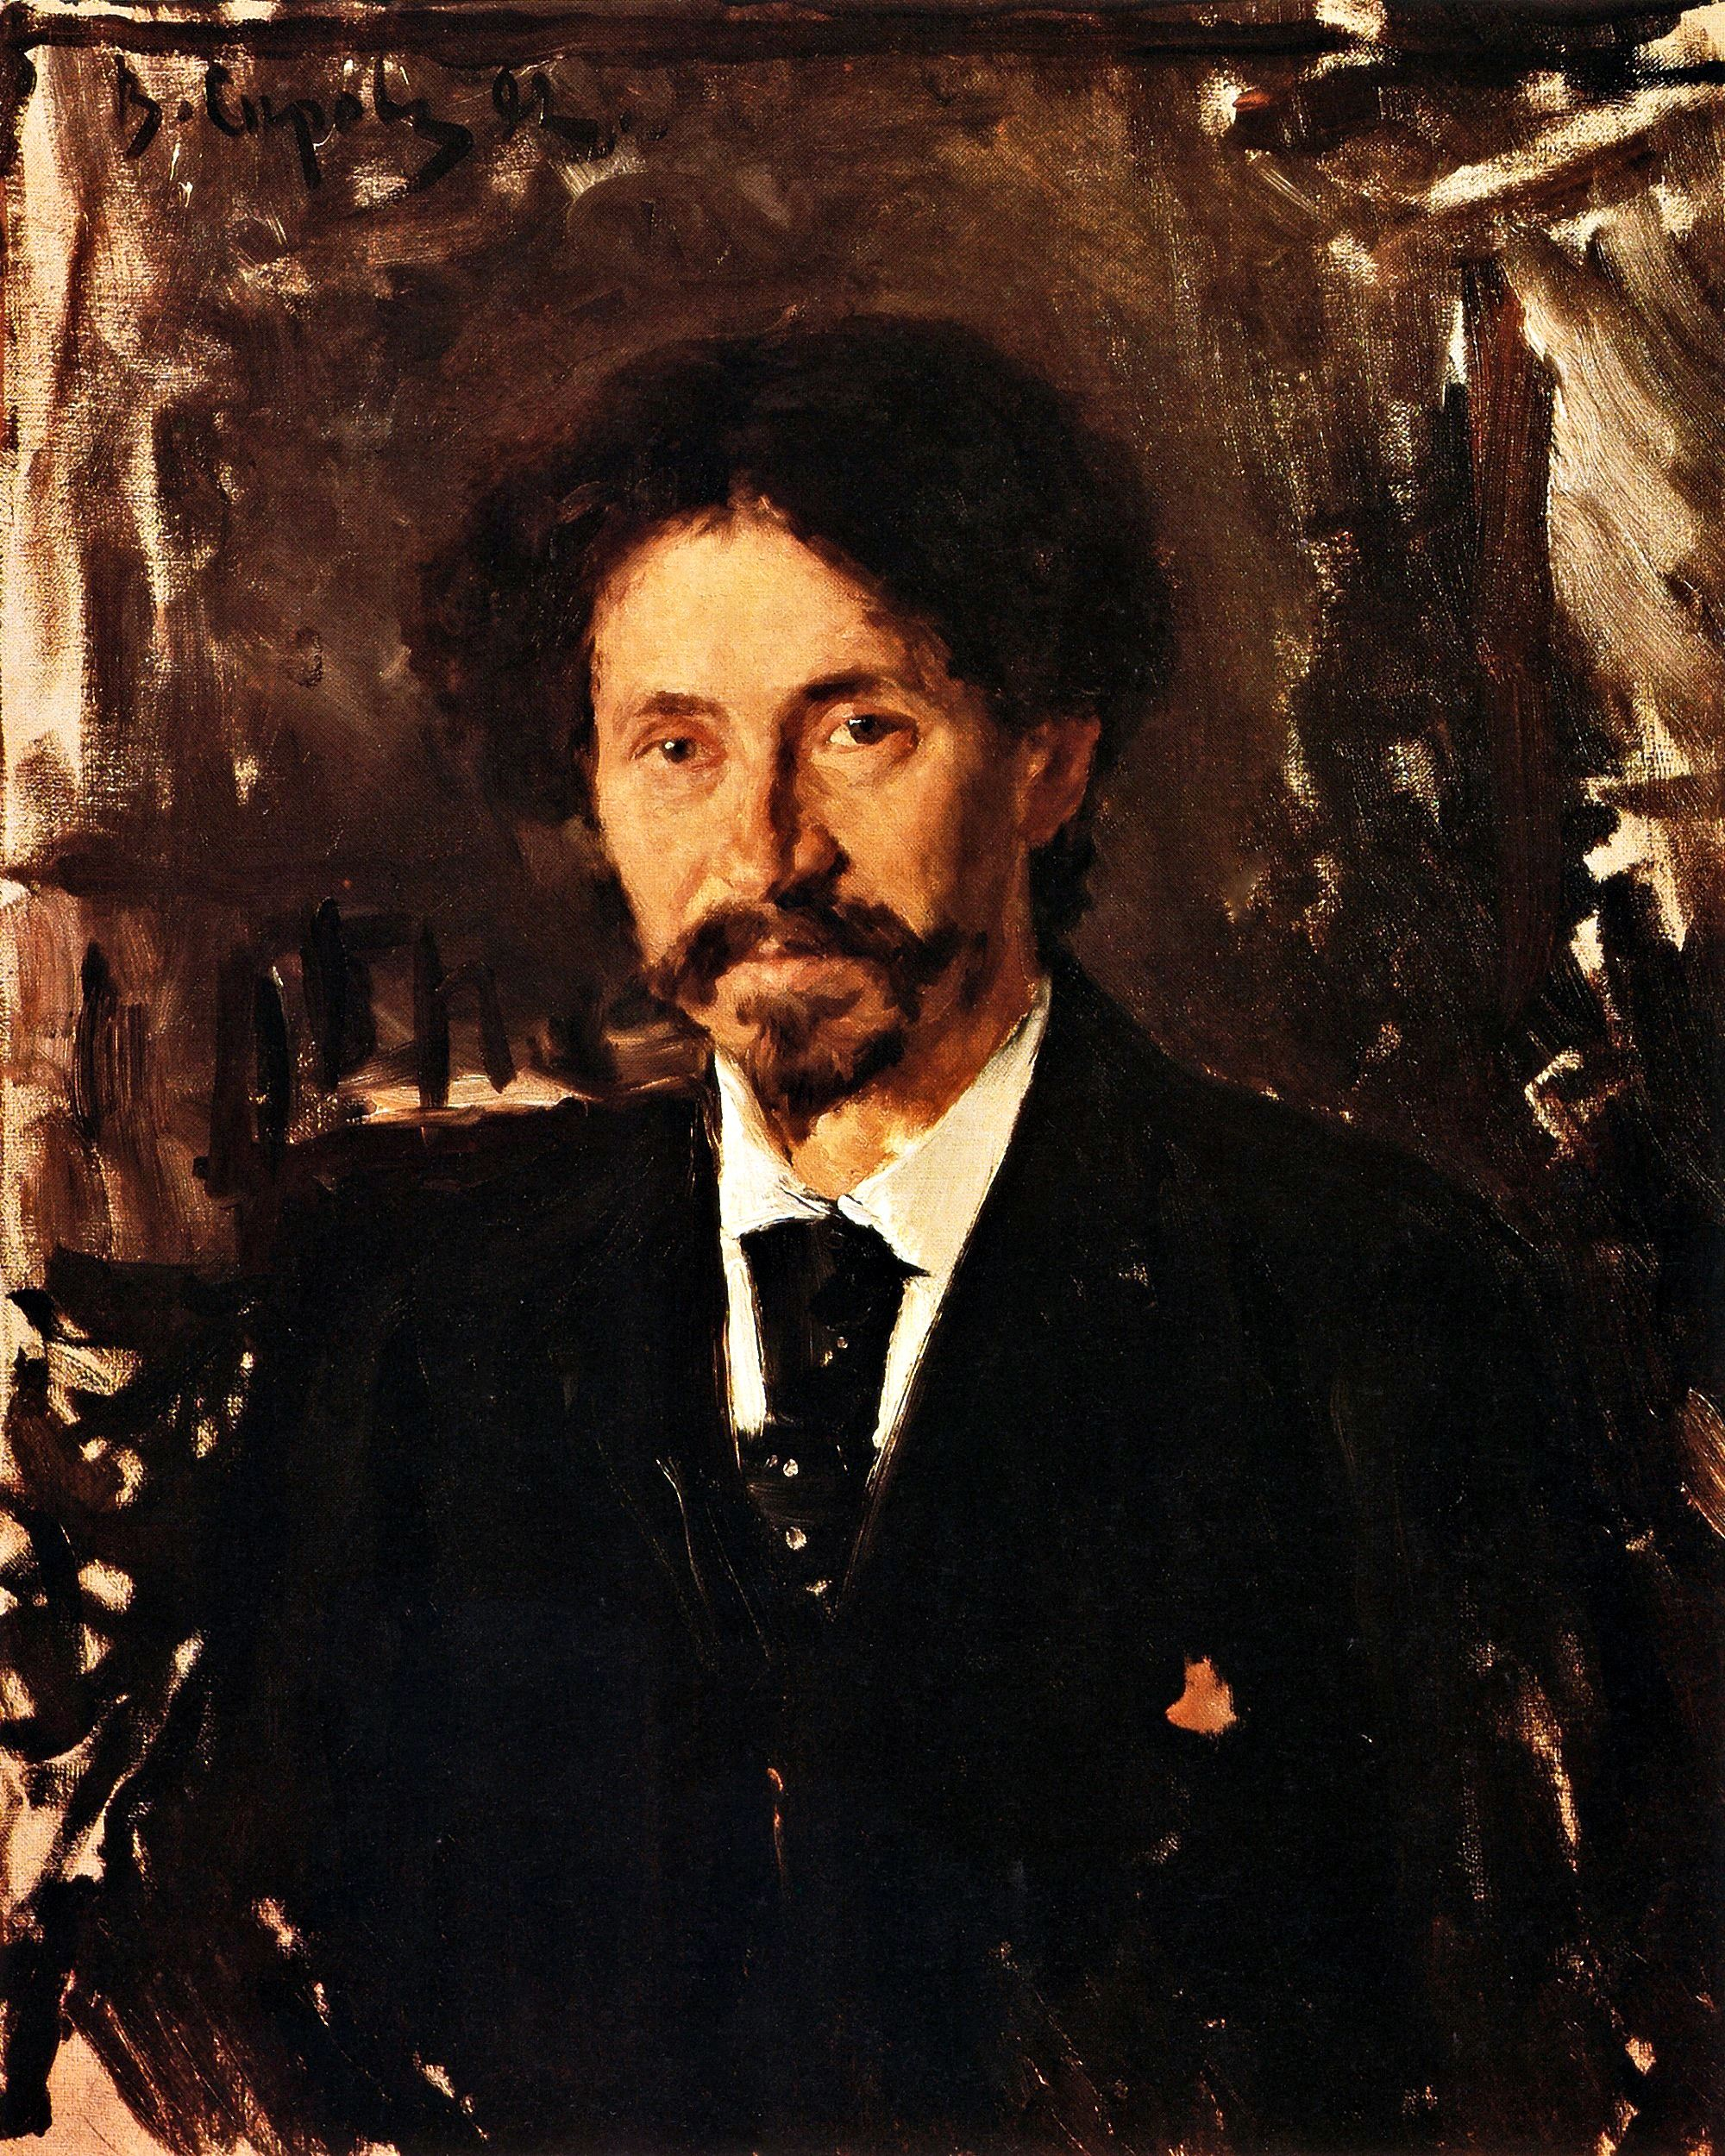 00 Valentin Serov. A Portrait of the Painter Ilya Yefimovich Repin. 1892